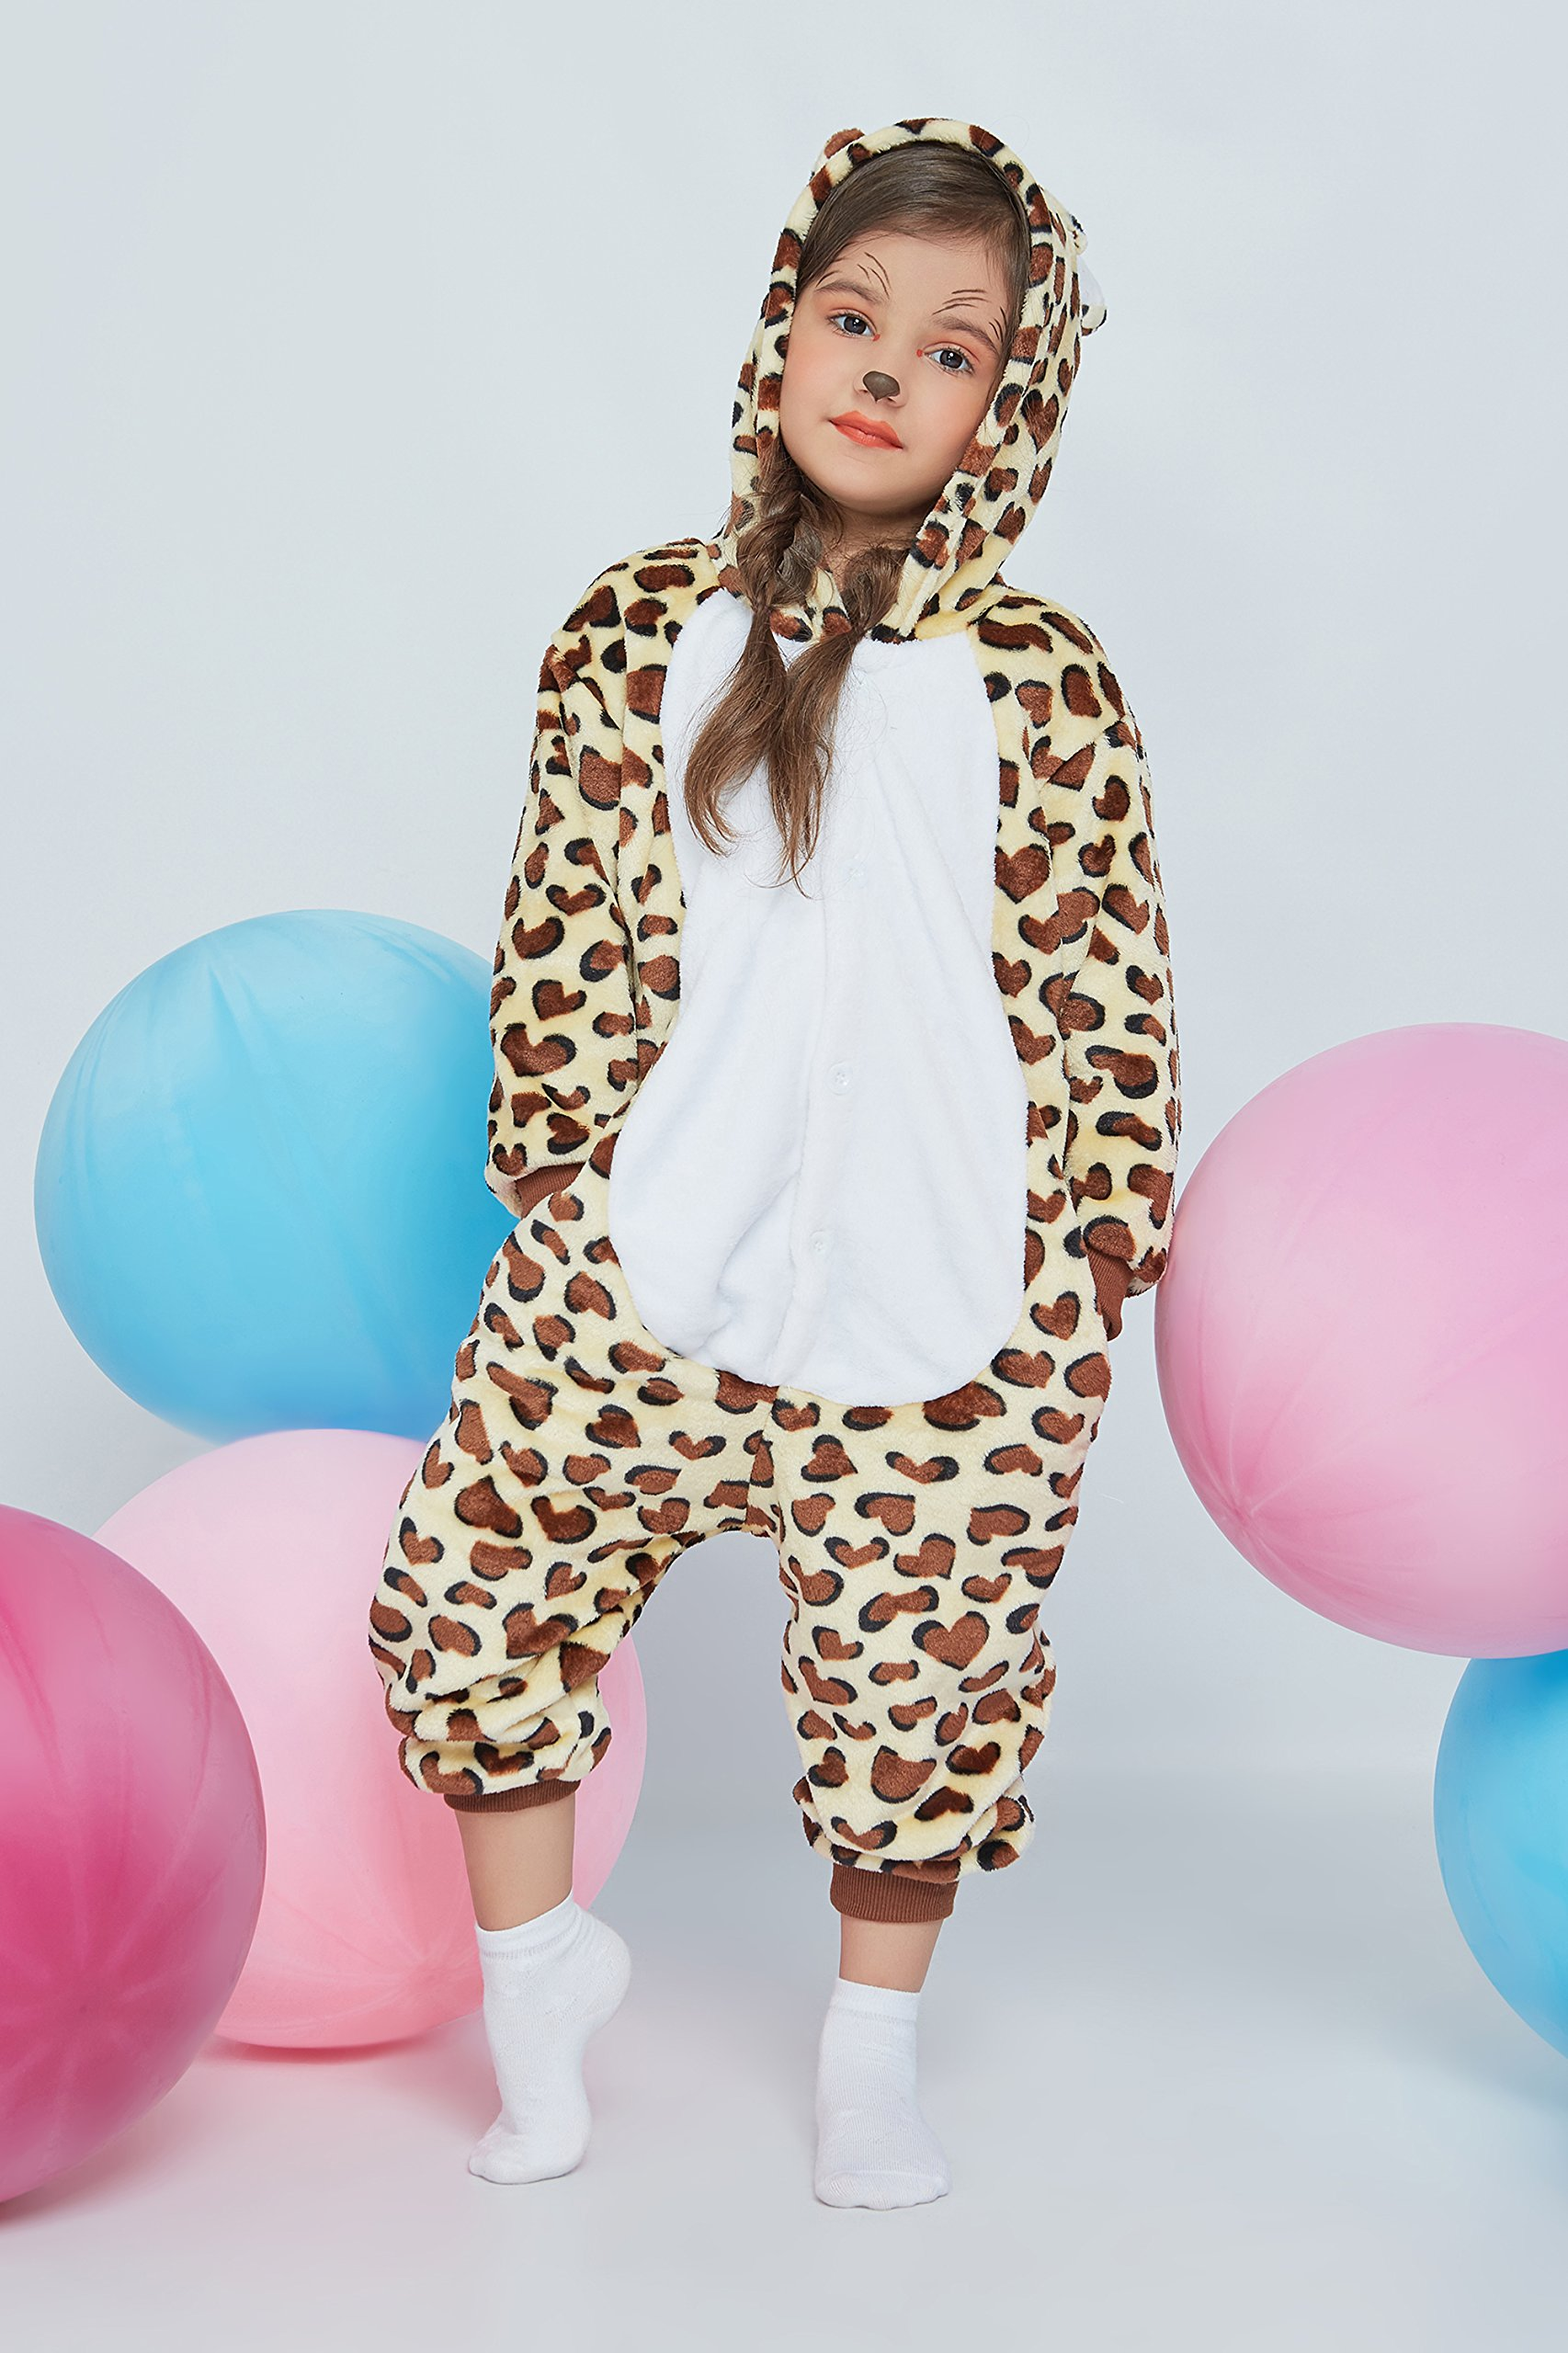 Kids Leopard Kigurumi Animal Onesie Pajamas Plush Onsie One Piece Cosplay Costume (Yellow, Brown, White) by Nothing But Love (Image #2)